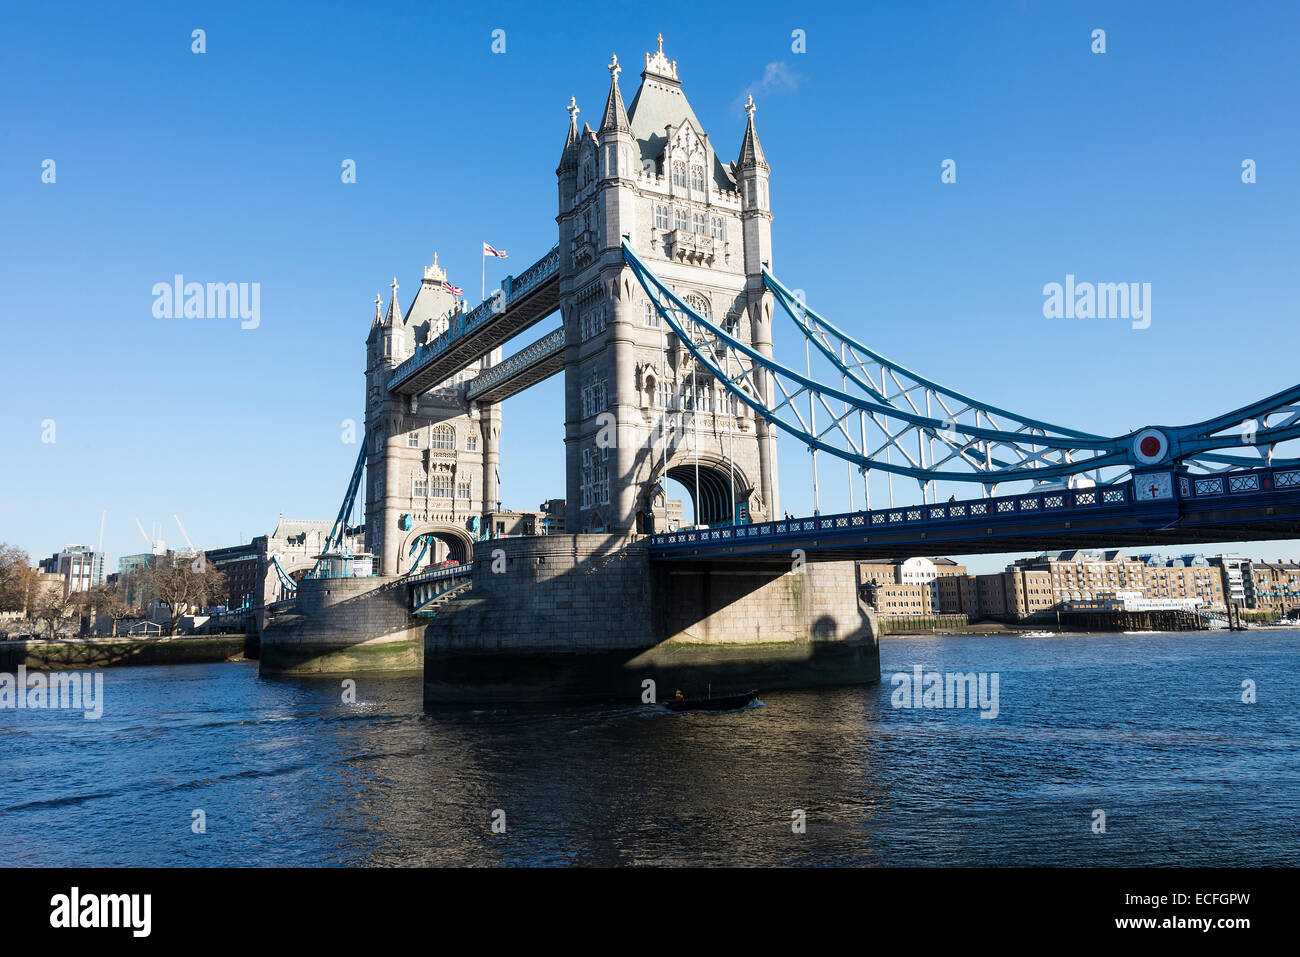 The Famous Tower Bridge Spanning River Thames Between Hamlets And Southwark In London England United Kingdom UK